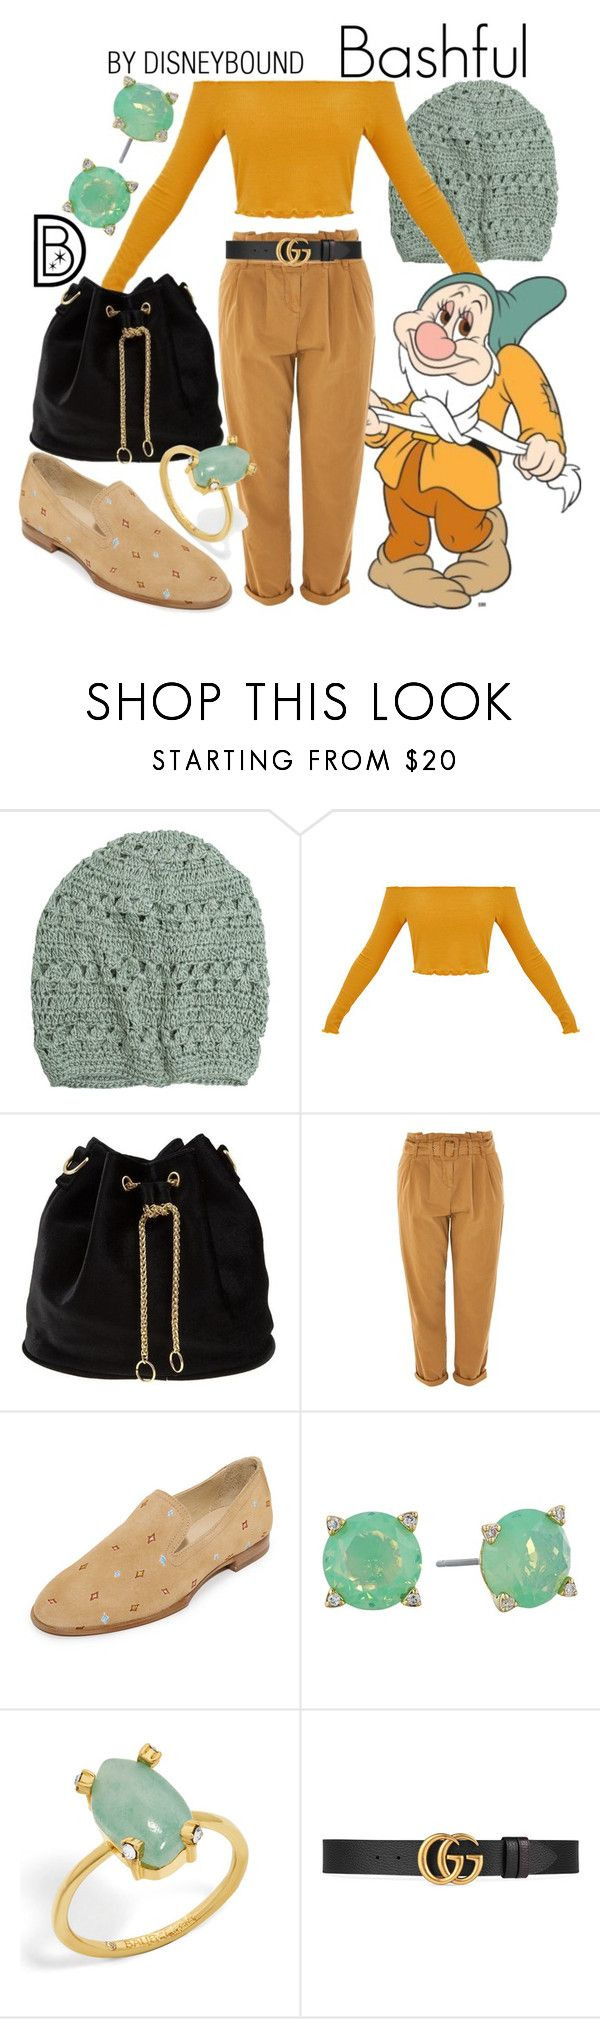 """""""Bashful"""" by leslieakay ❤ liked on Polyvore featuring Krochet Kids, 7 For All Mankind, Topshop, rag & bone, Vera Bradley, BaubleBar, Gucci, disney, disneybound and disneycharacter"""